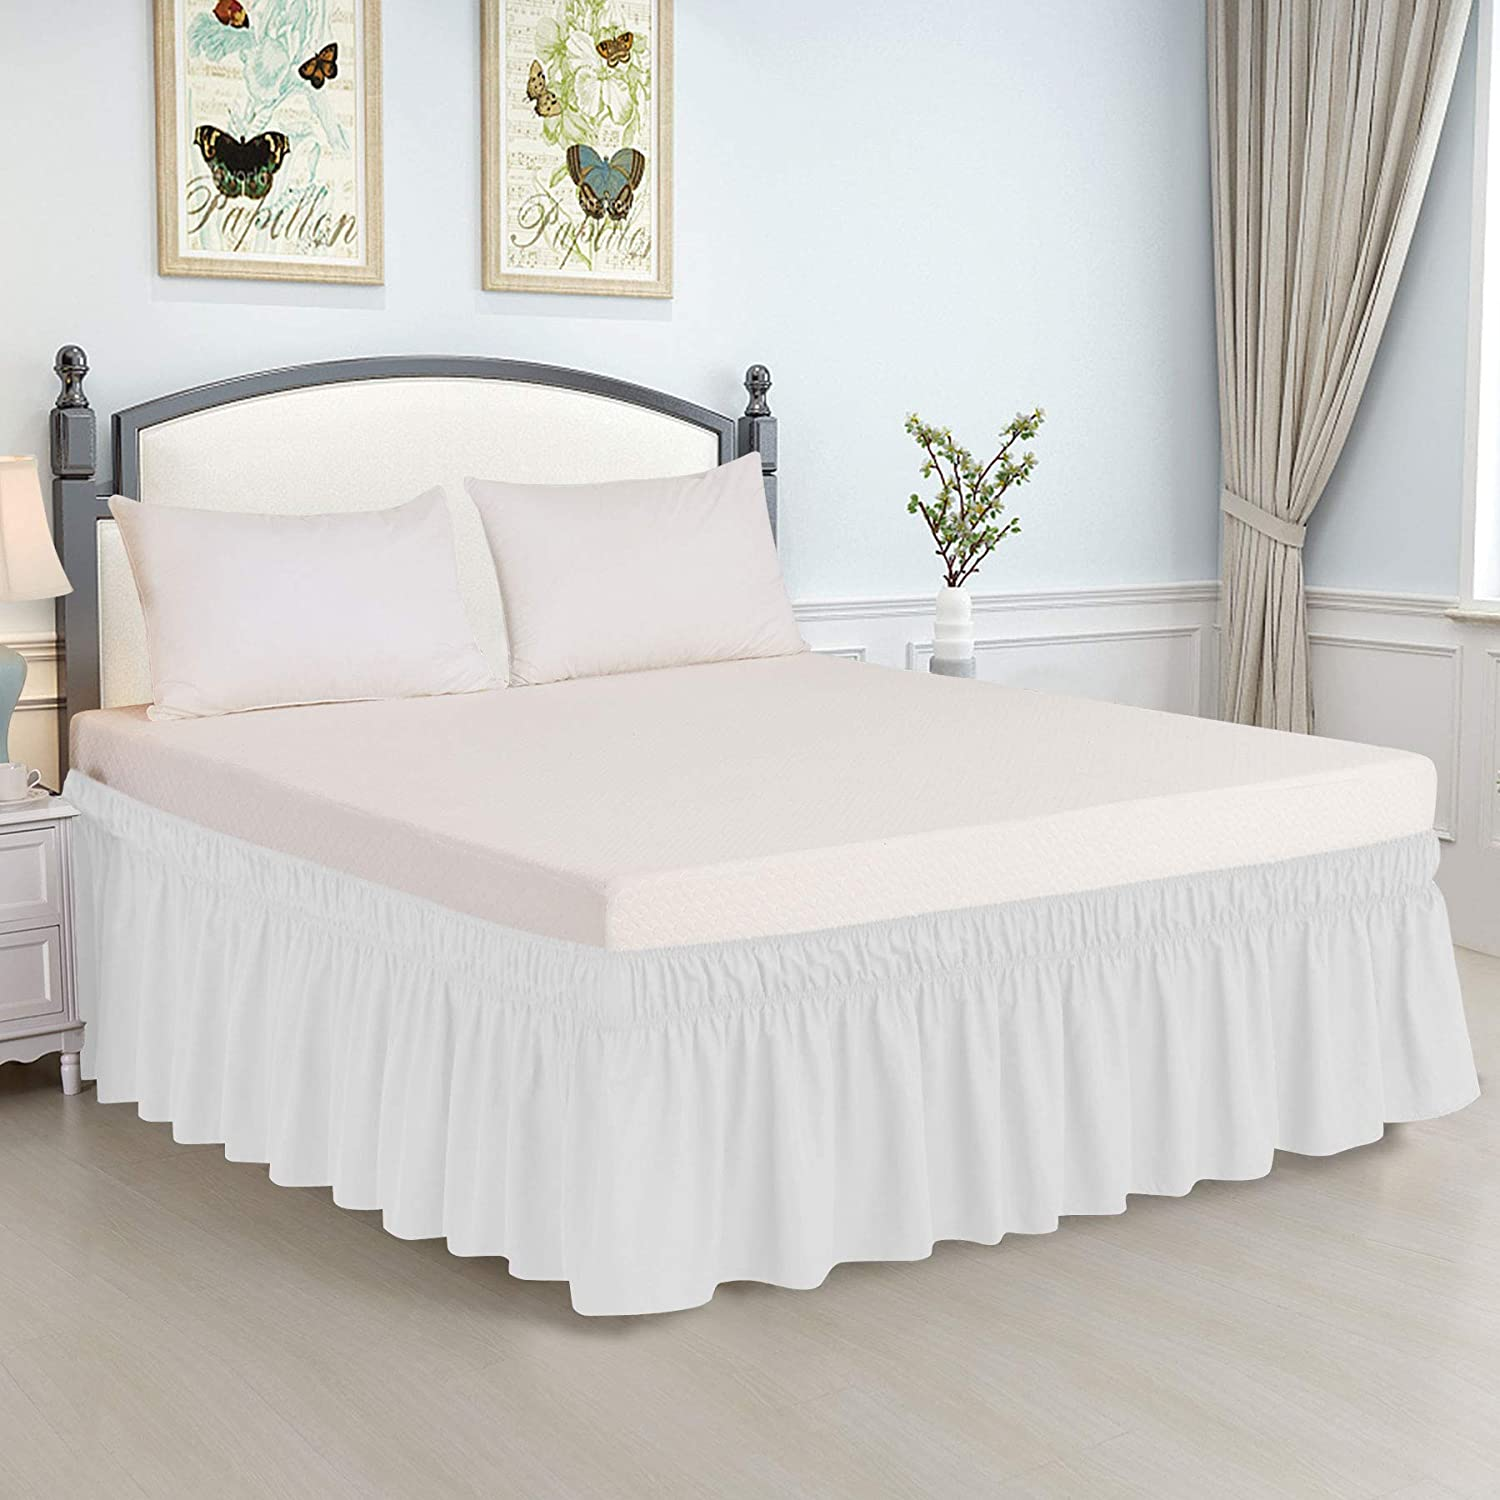 Guken Wrap Around Bed Skirt 15 Inch Drop Elastic Dust Ruffle Easy Fit Wrinkle and Fade Resistant Luxurious Silky Fabric Solid Easy On and Easy Off Beige,Twin